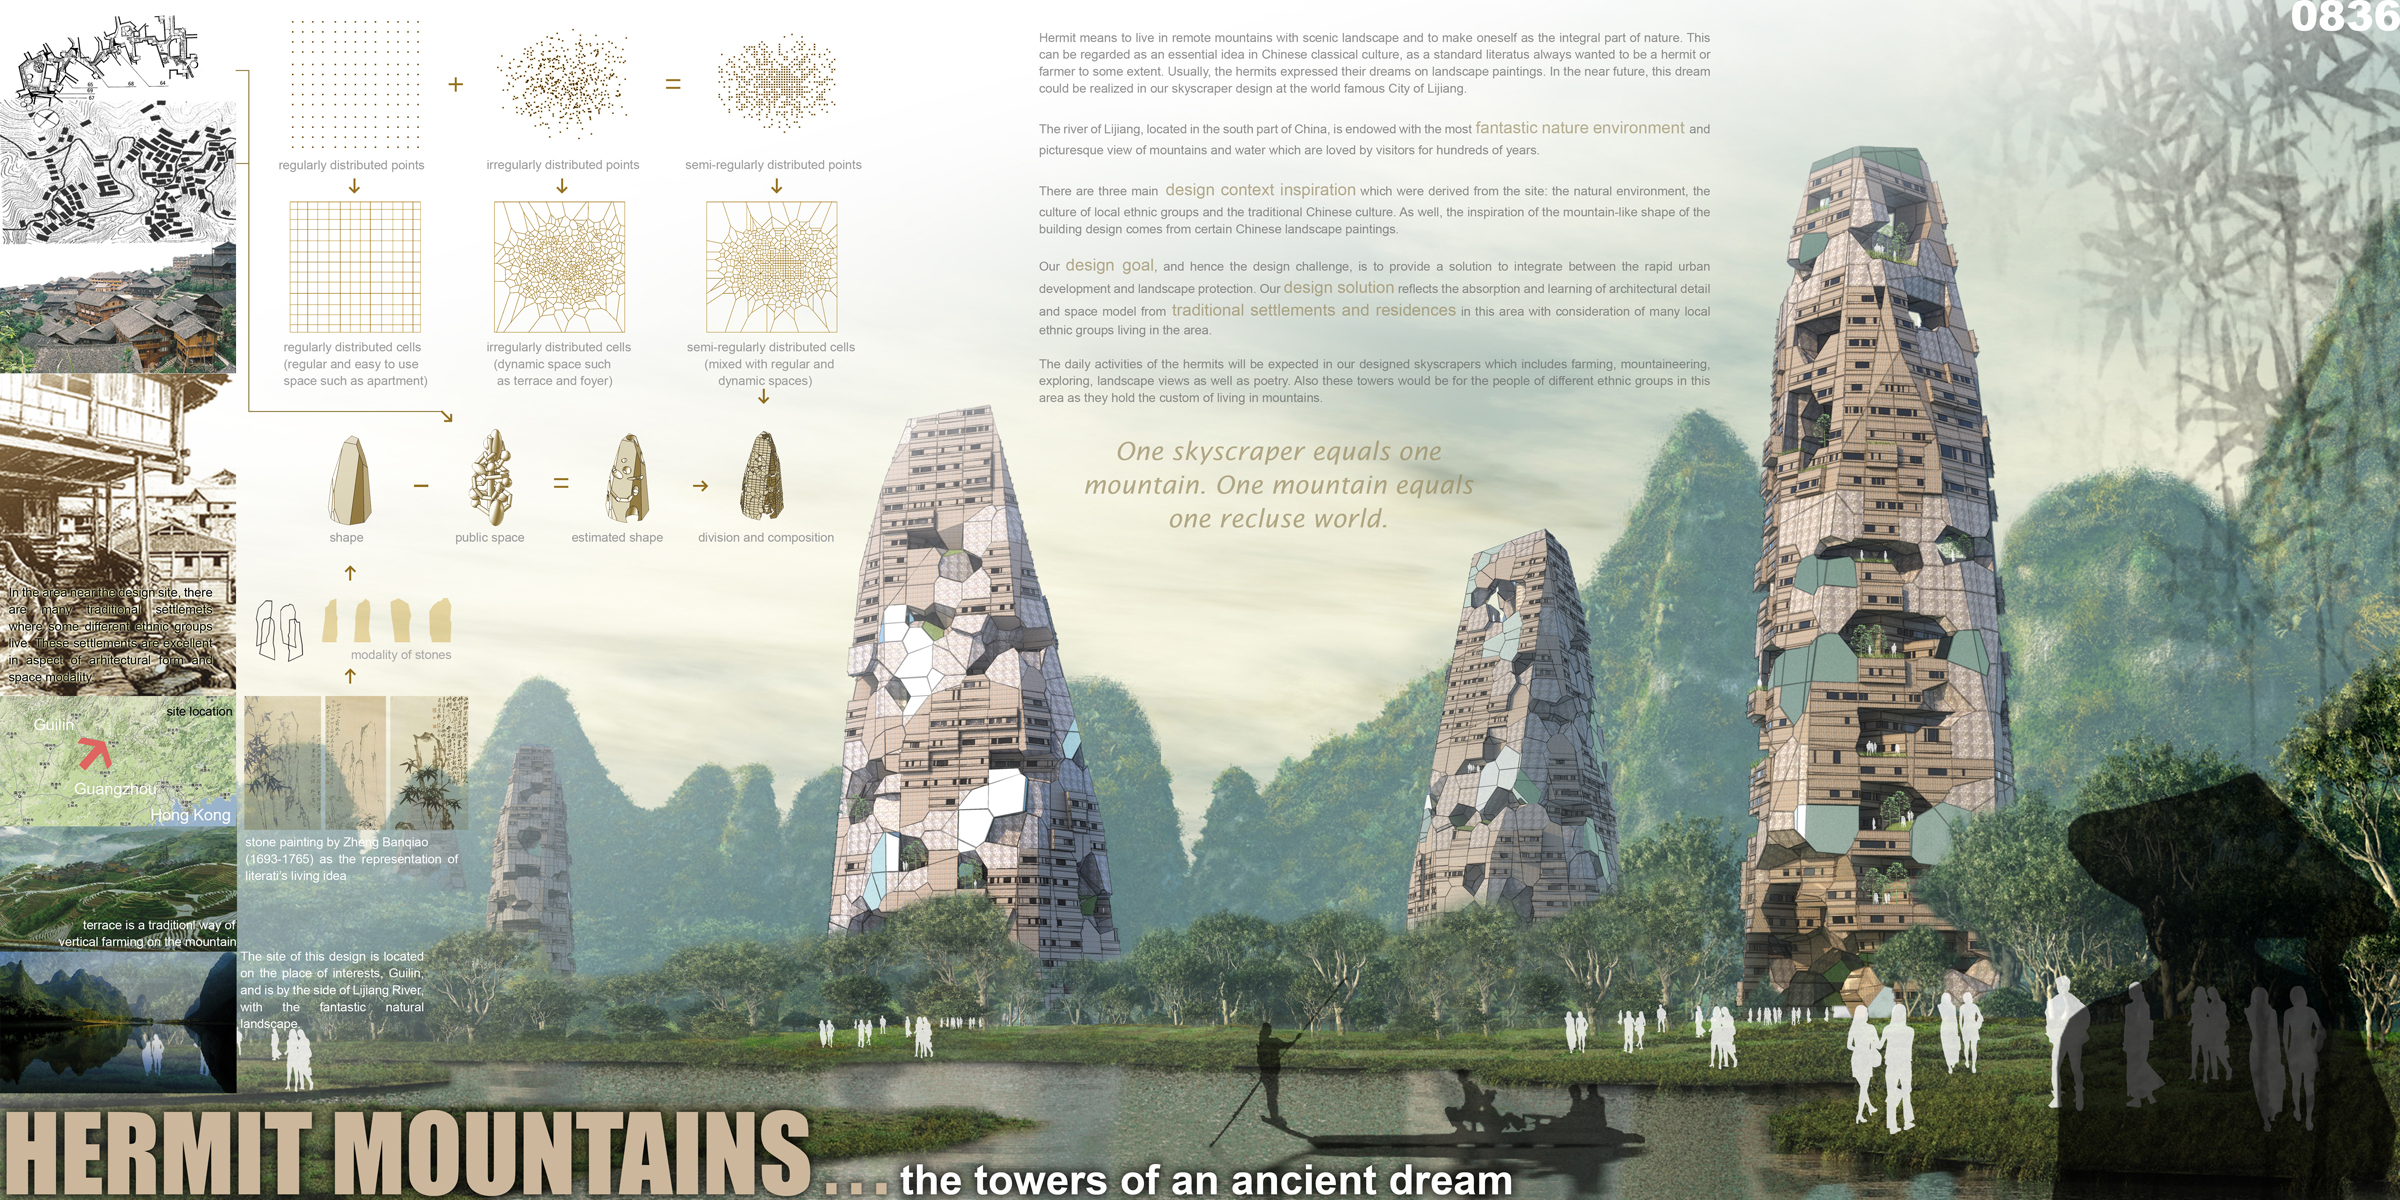 Hermit Mountains – Towers of Ancient Dreams- eVolo